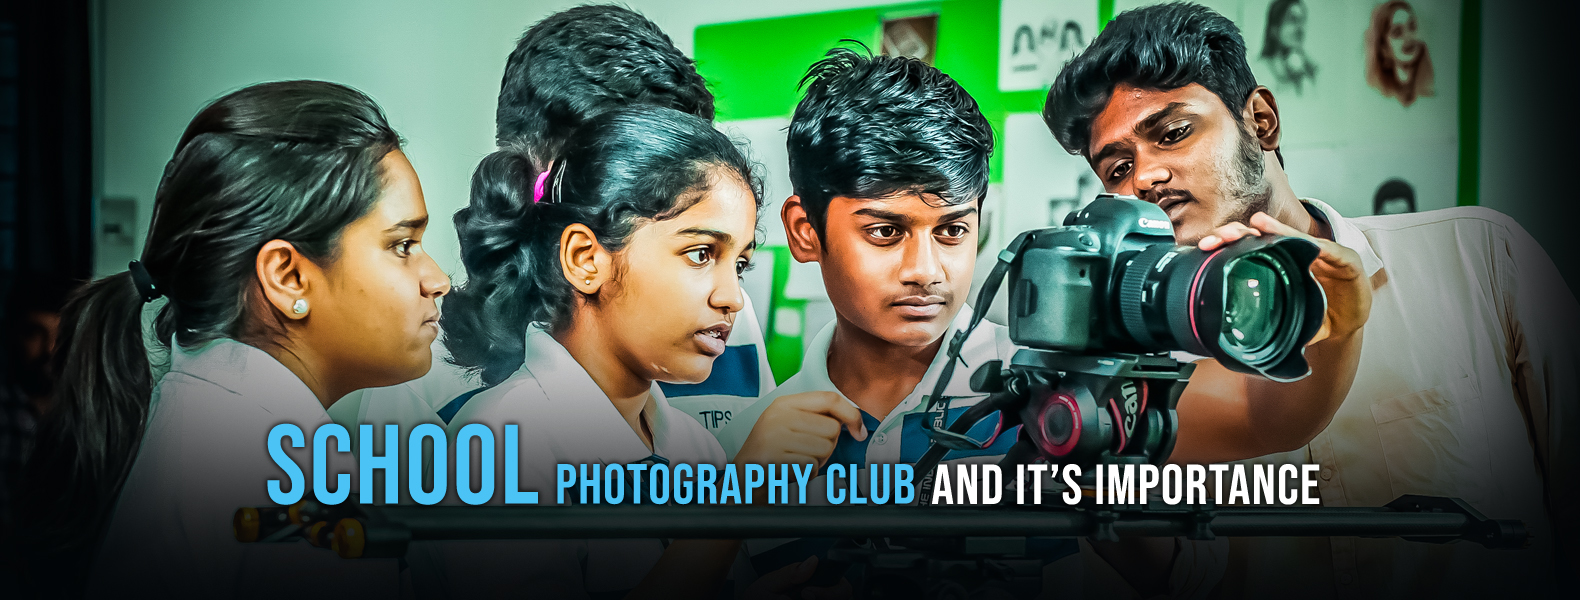 School Photography Club And It's Importance.